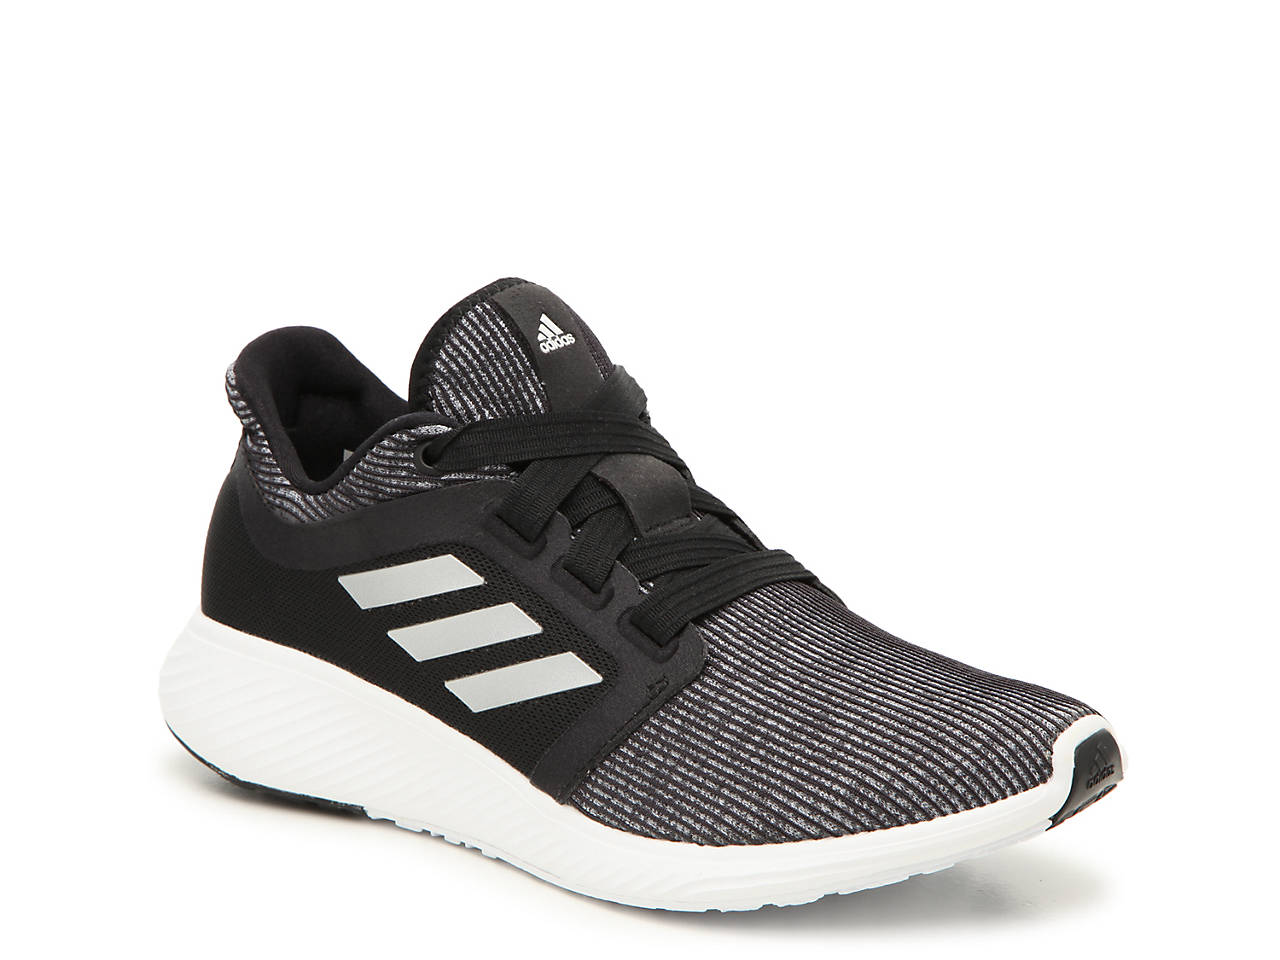 adidas Edge Lux 3 Lightweight Running Shoe - Women's Women